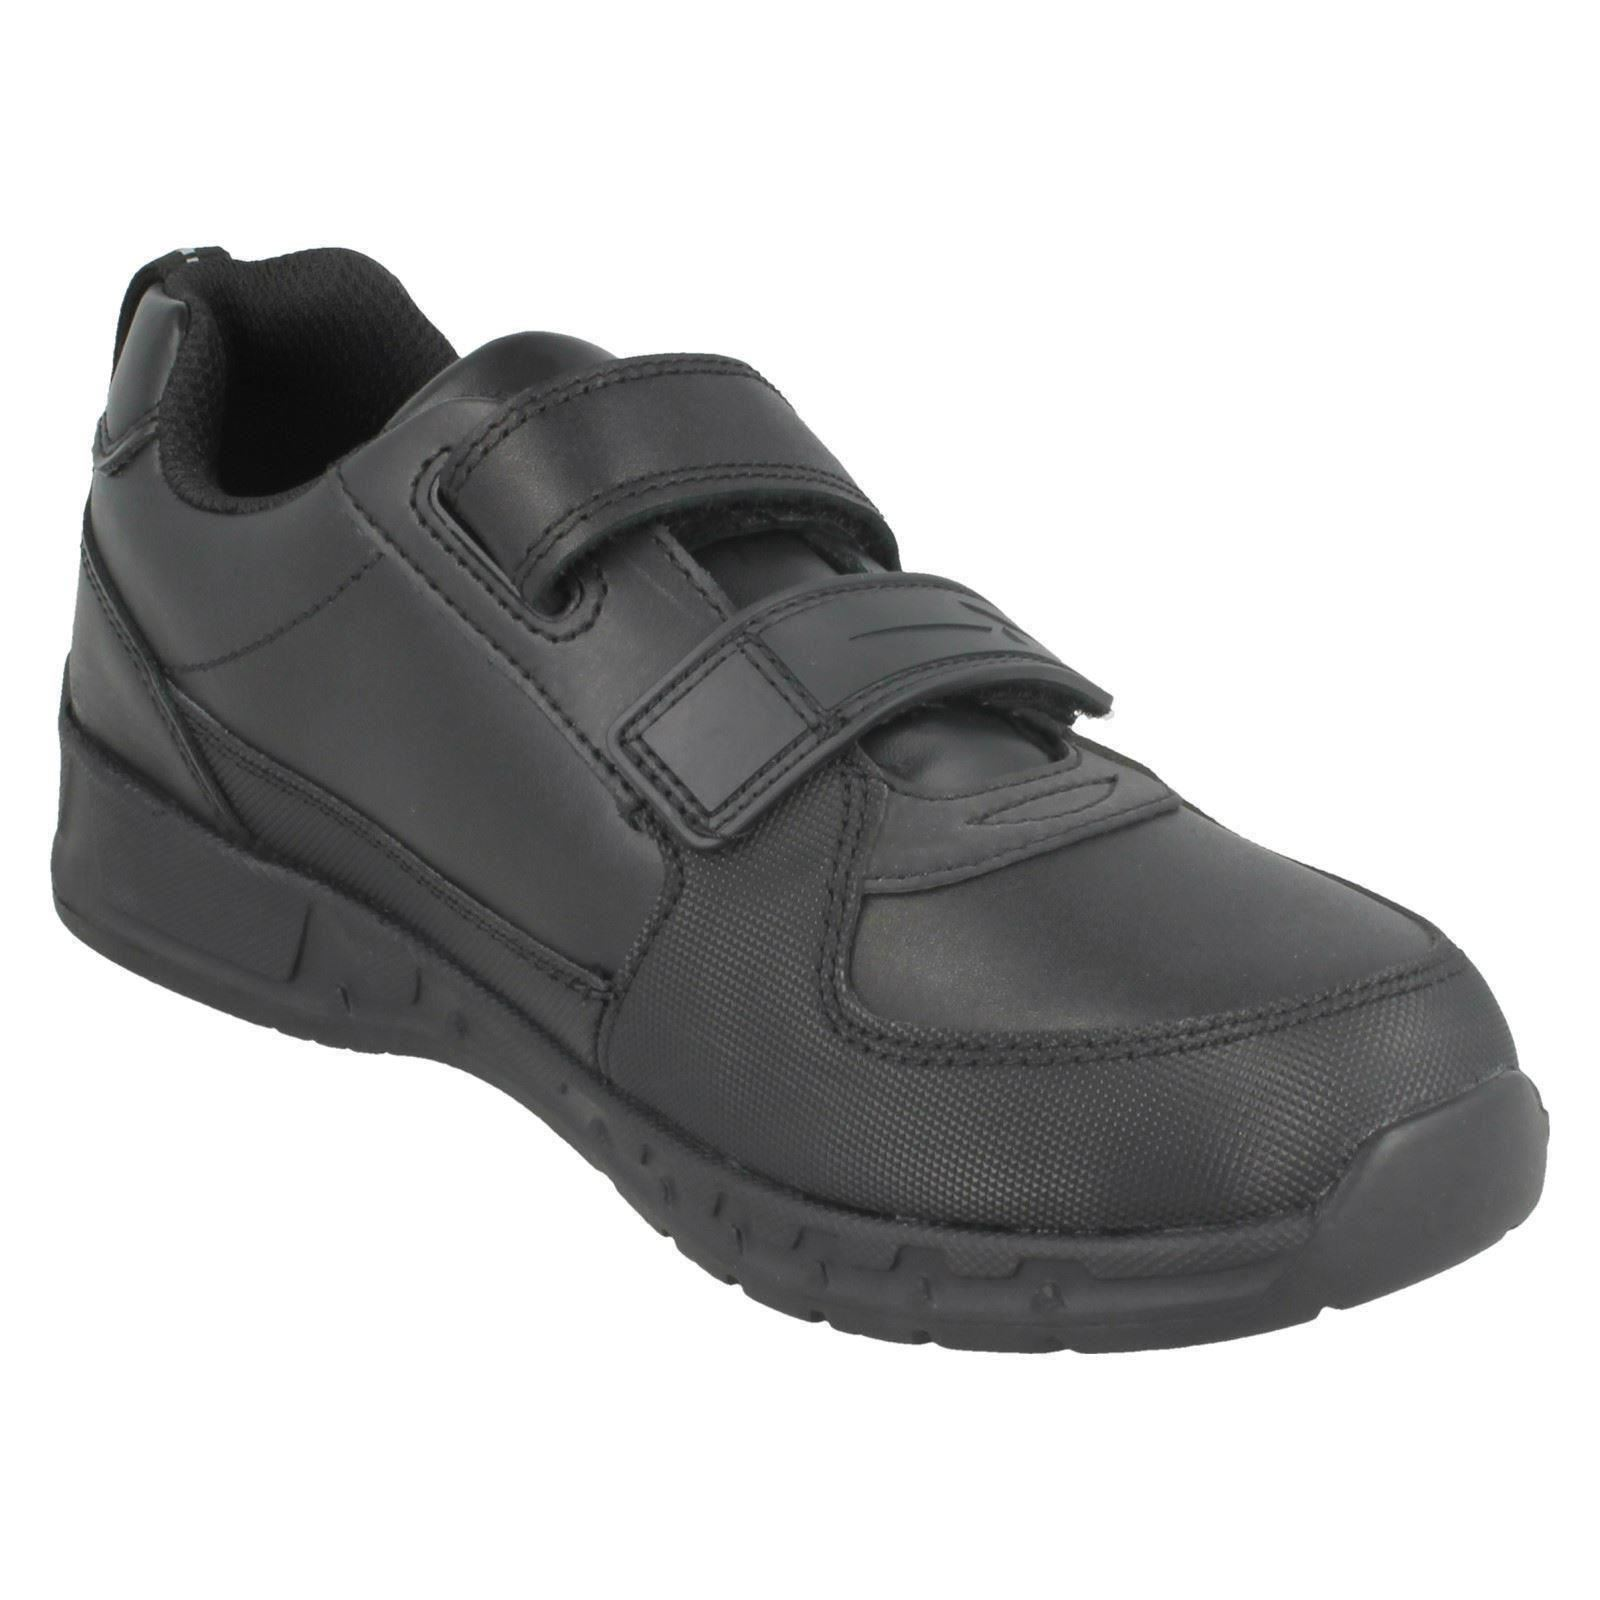 Boys Clarks Gloforms Double Strap Rounded Toe Leather School Shoes Maris Fire